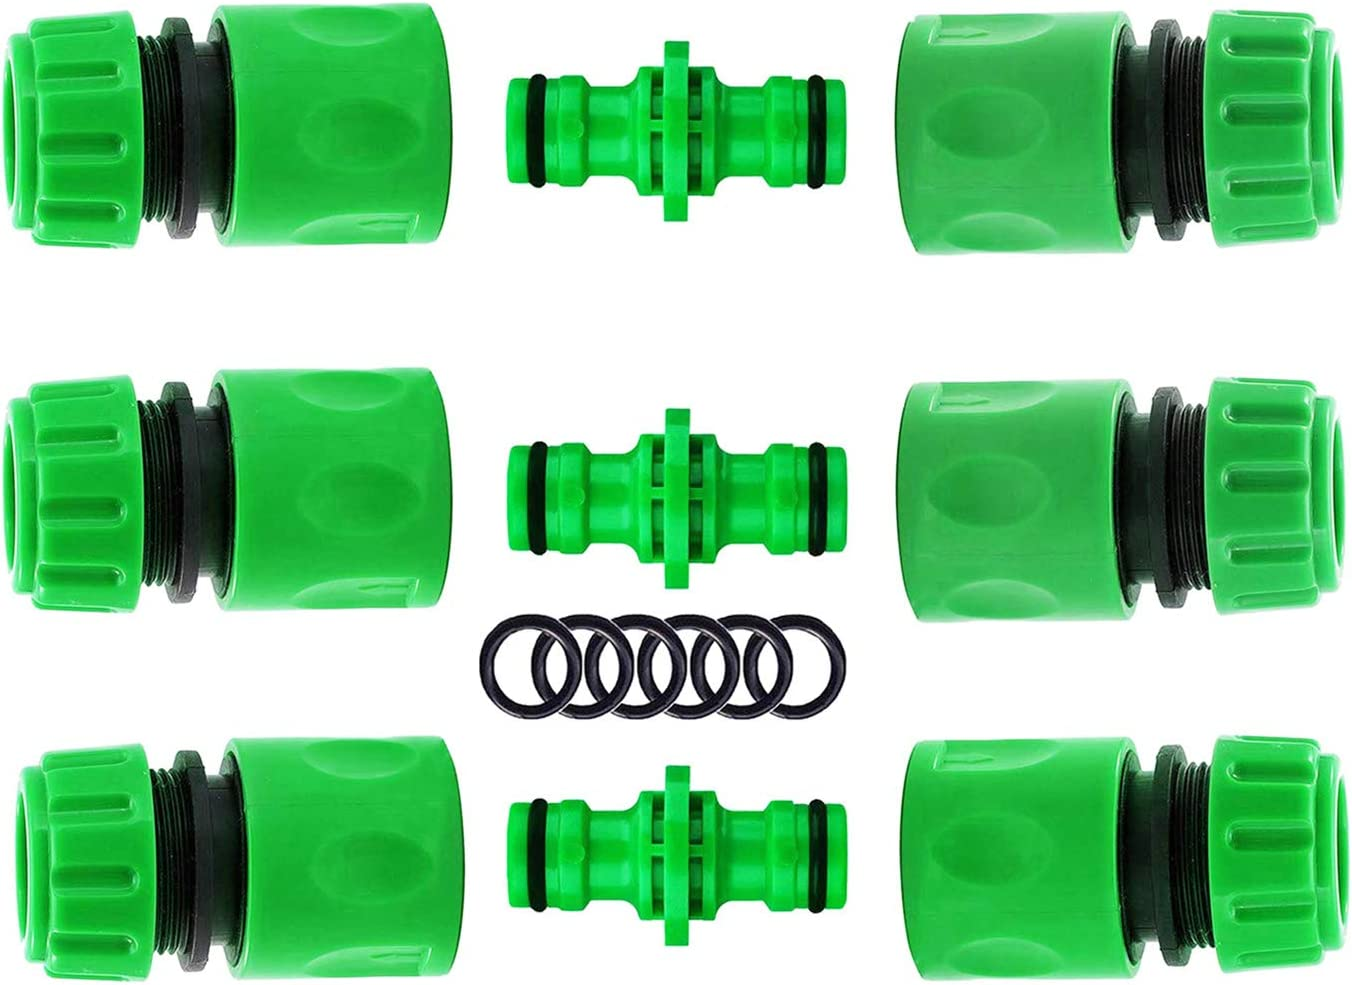 Double Male 6pcs + Y Male Connector 1pcs CaLeQi 1//2 inch Hose Repair Connector Extender for Join 1//2 inch Garden Hose Pipe and House Water Pipes Quick Repair Connection